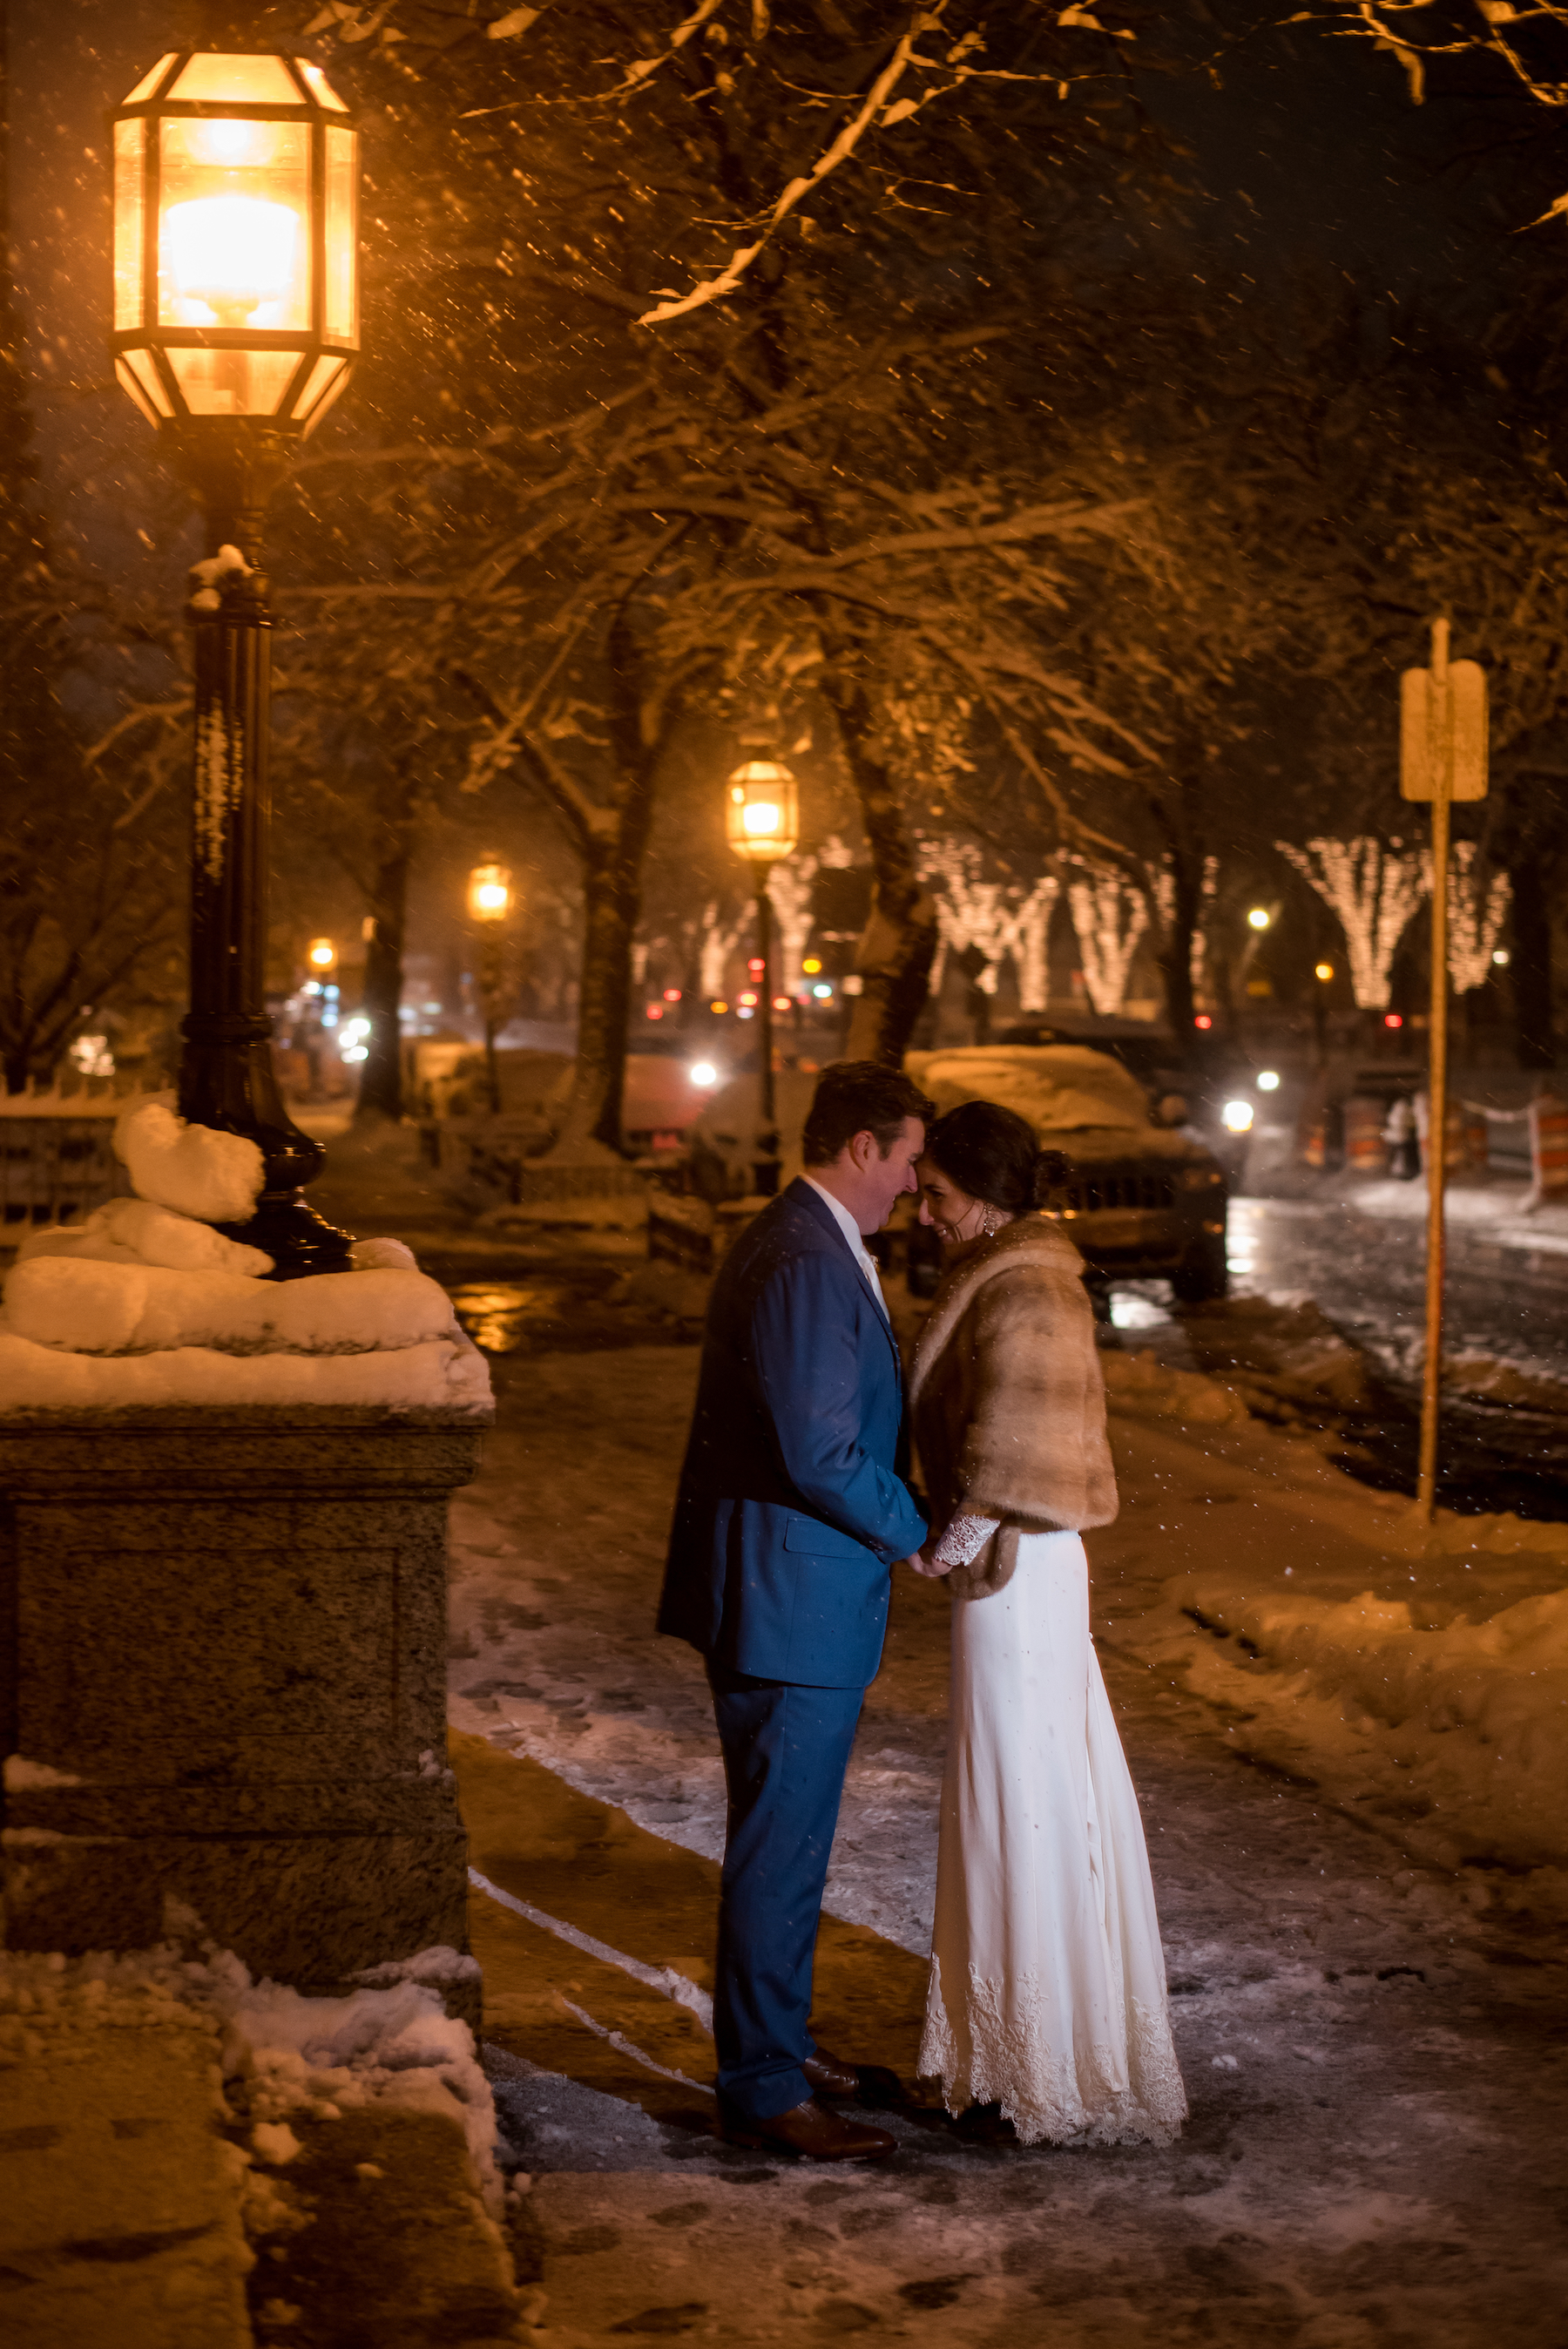 Devin-Dan-Winter-Wedding-Boston- Wedding-Destination-Wedding-Wedding-Planner-Nicole-Simeral-